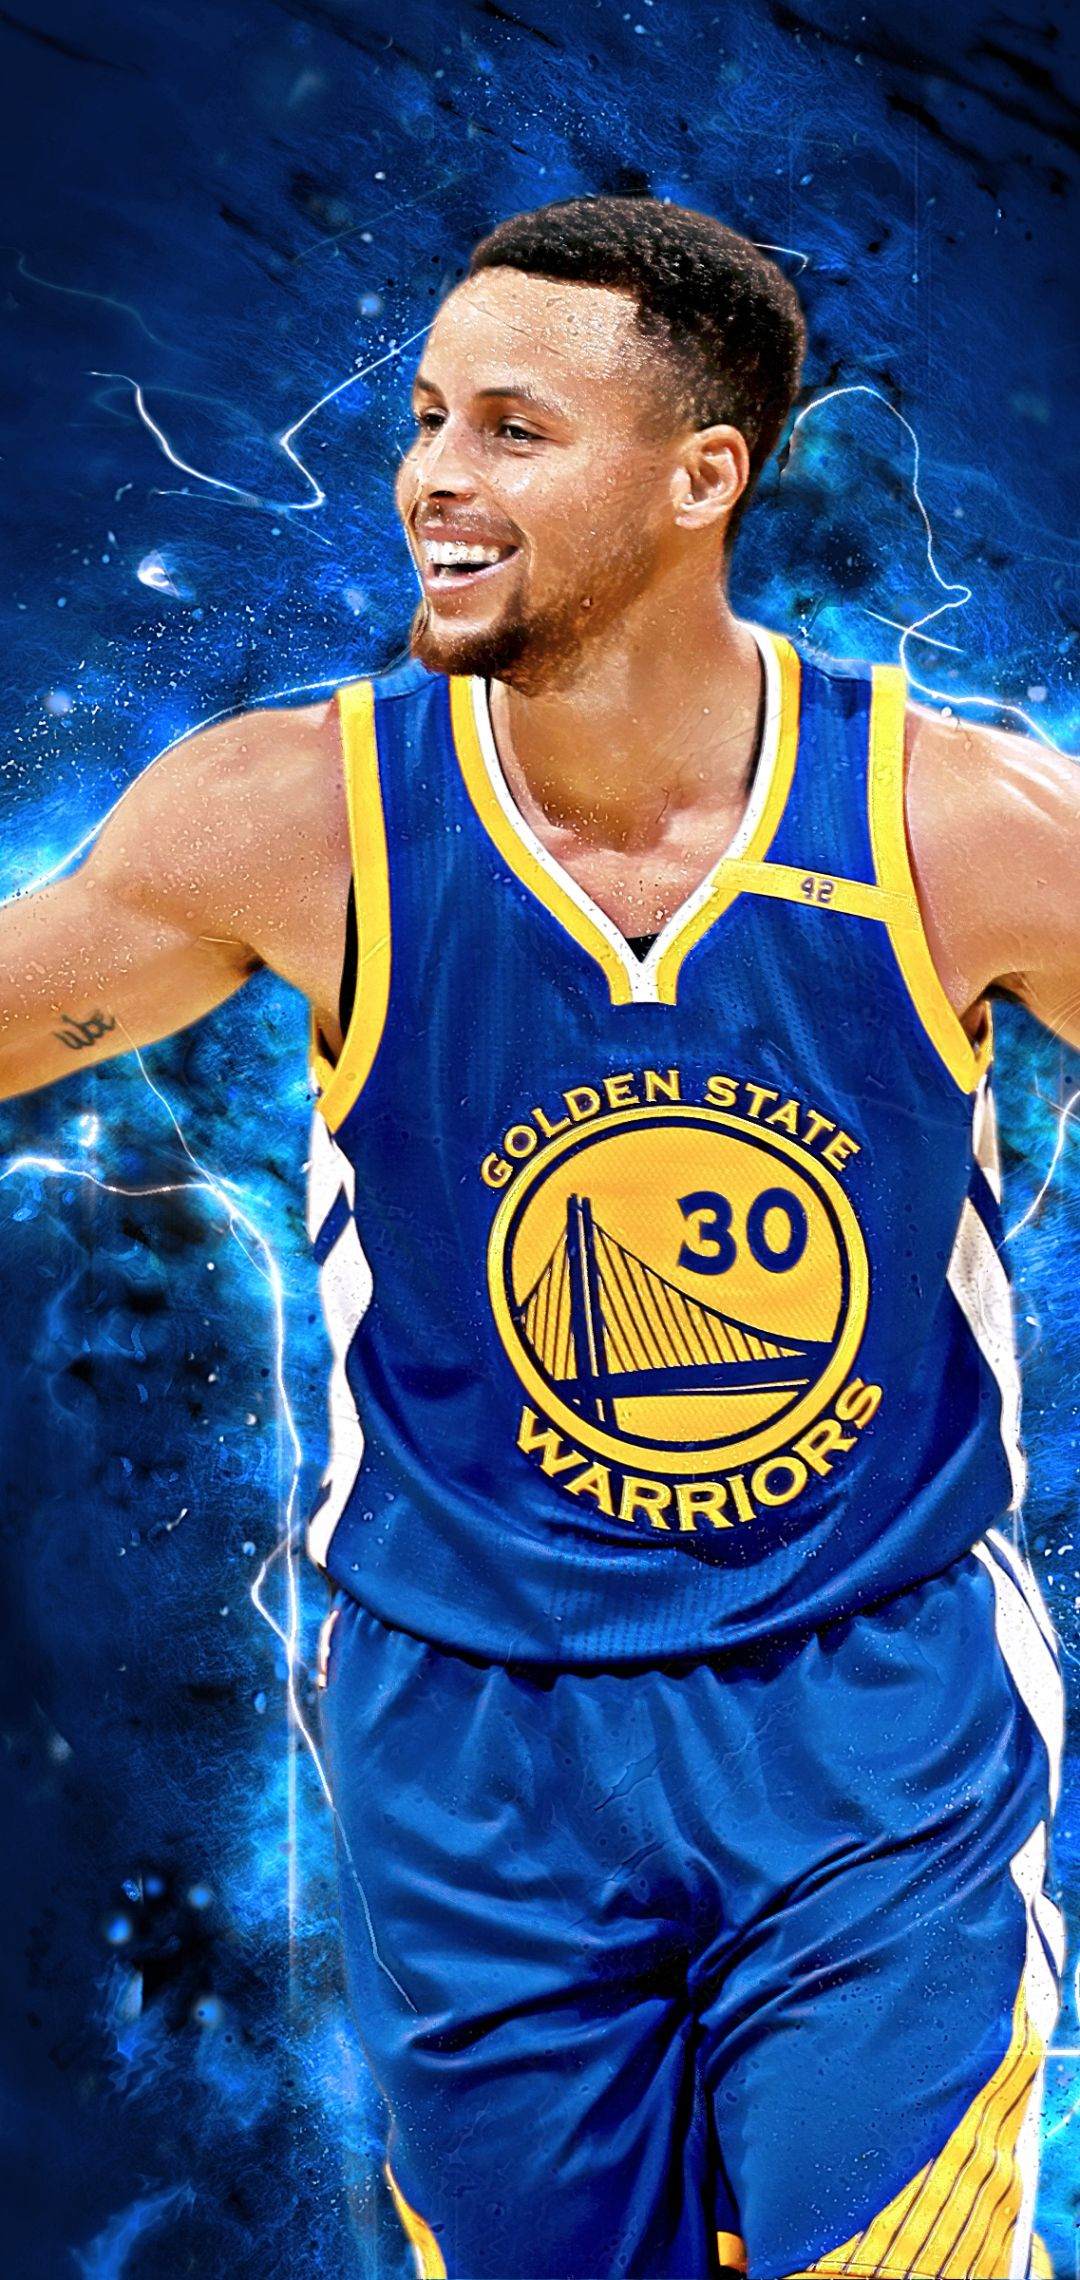 Stephen Curry 2020 Wallpapers - Wallpaper Cave